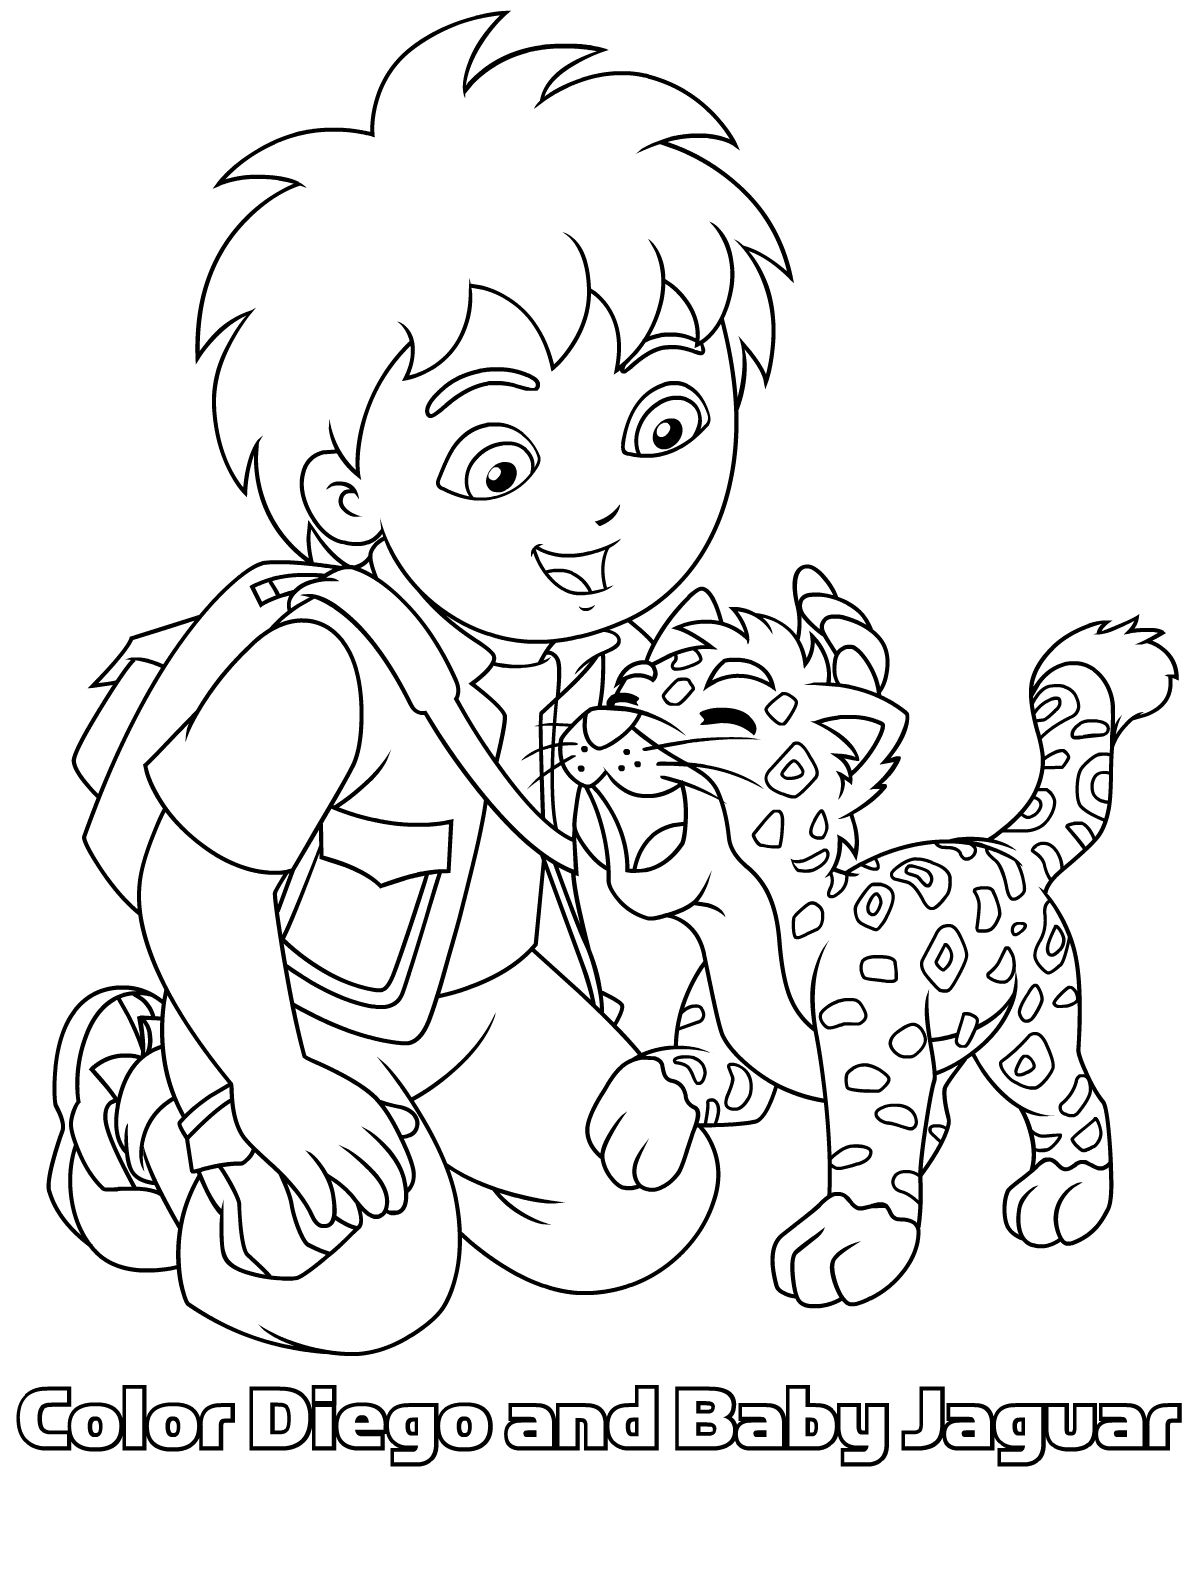 baby jaguar coloring pages diego en baby jaguar samen op 1 kleurplaat kleurplaten coloring pages jaguar baby